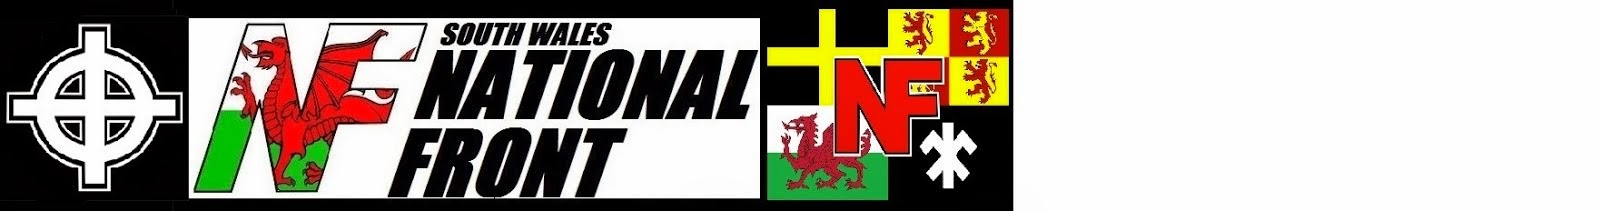 SOUTH WALES NATIONAL FRONT